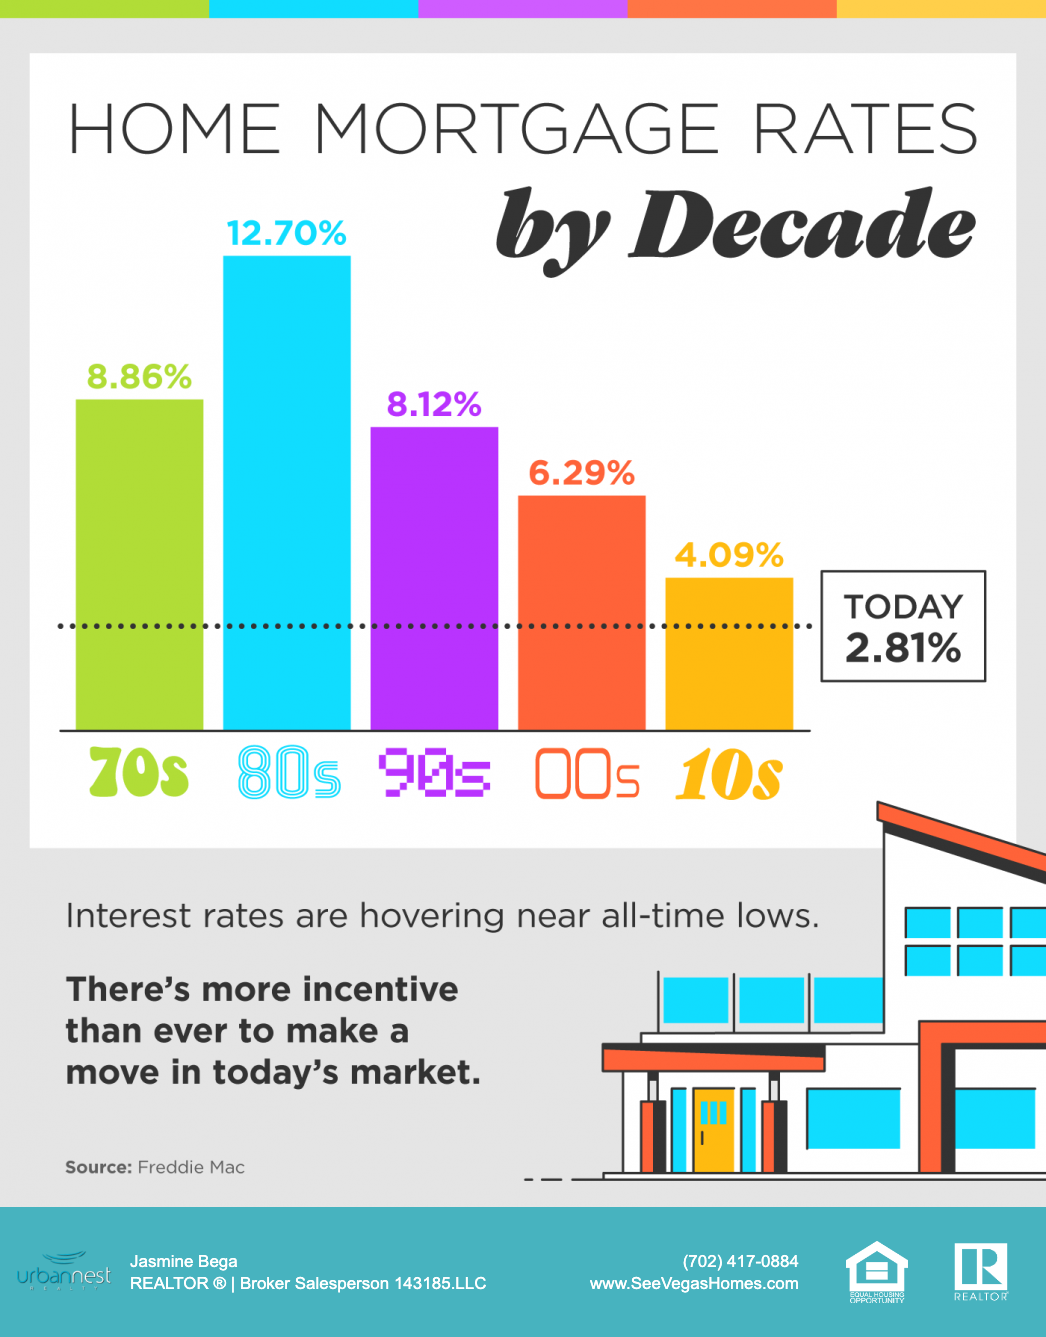 Home Mortgage Rates by Decade SeeVegasHomes